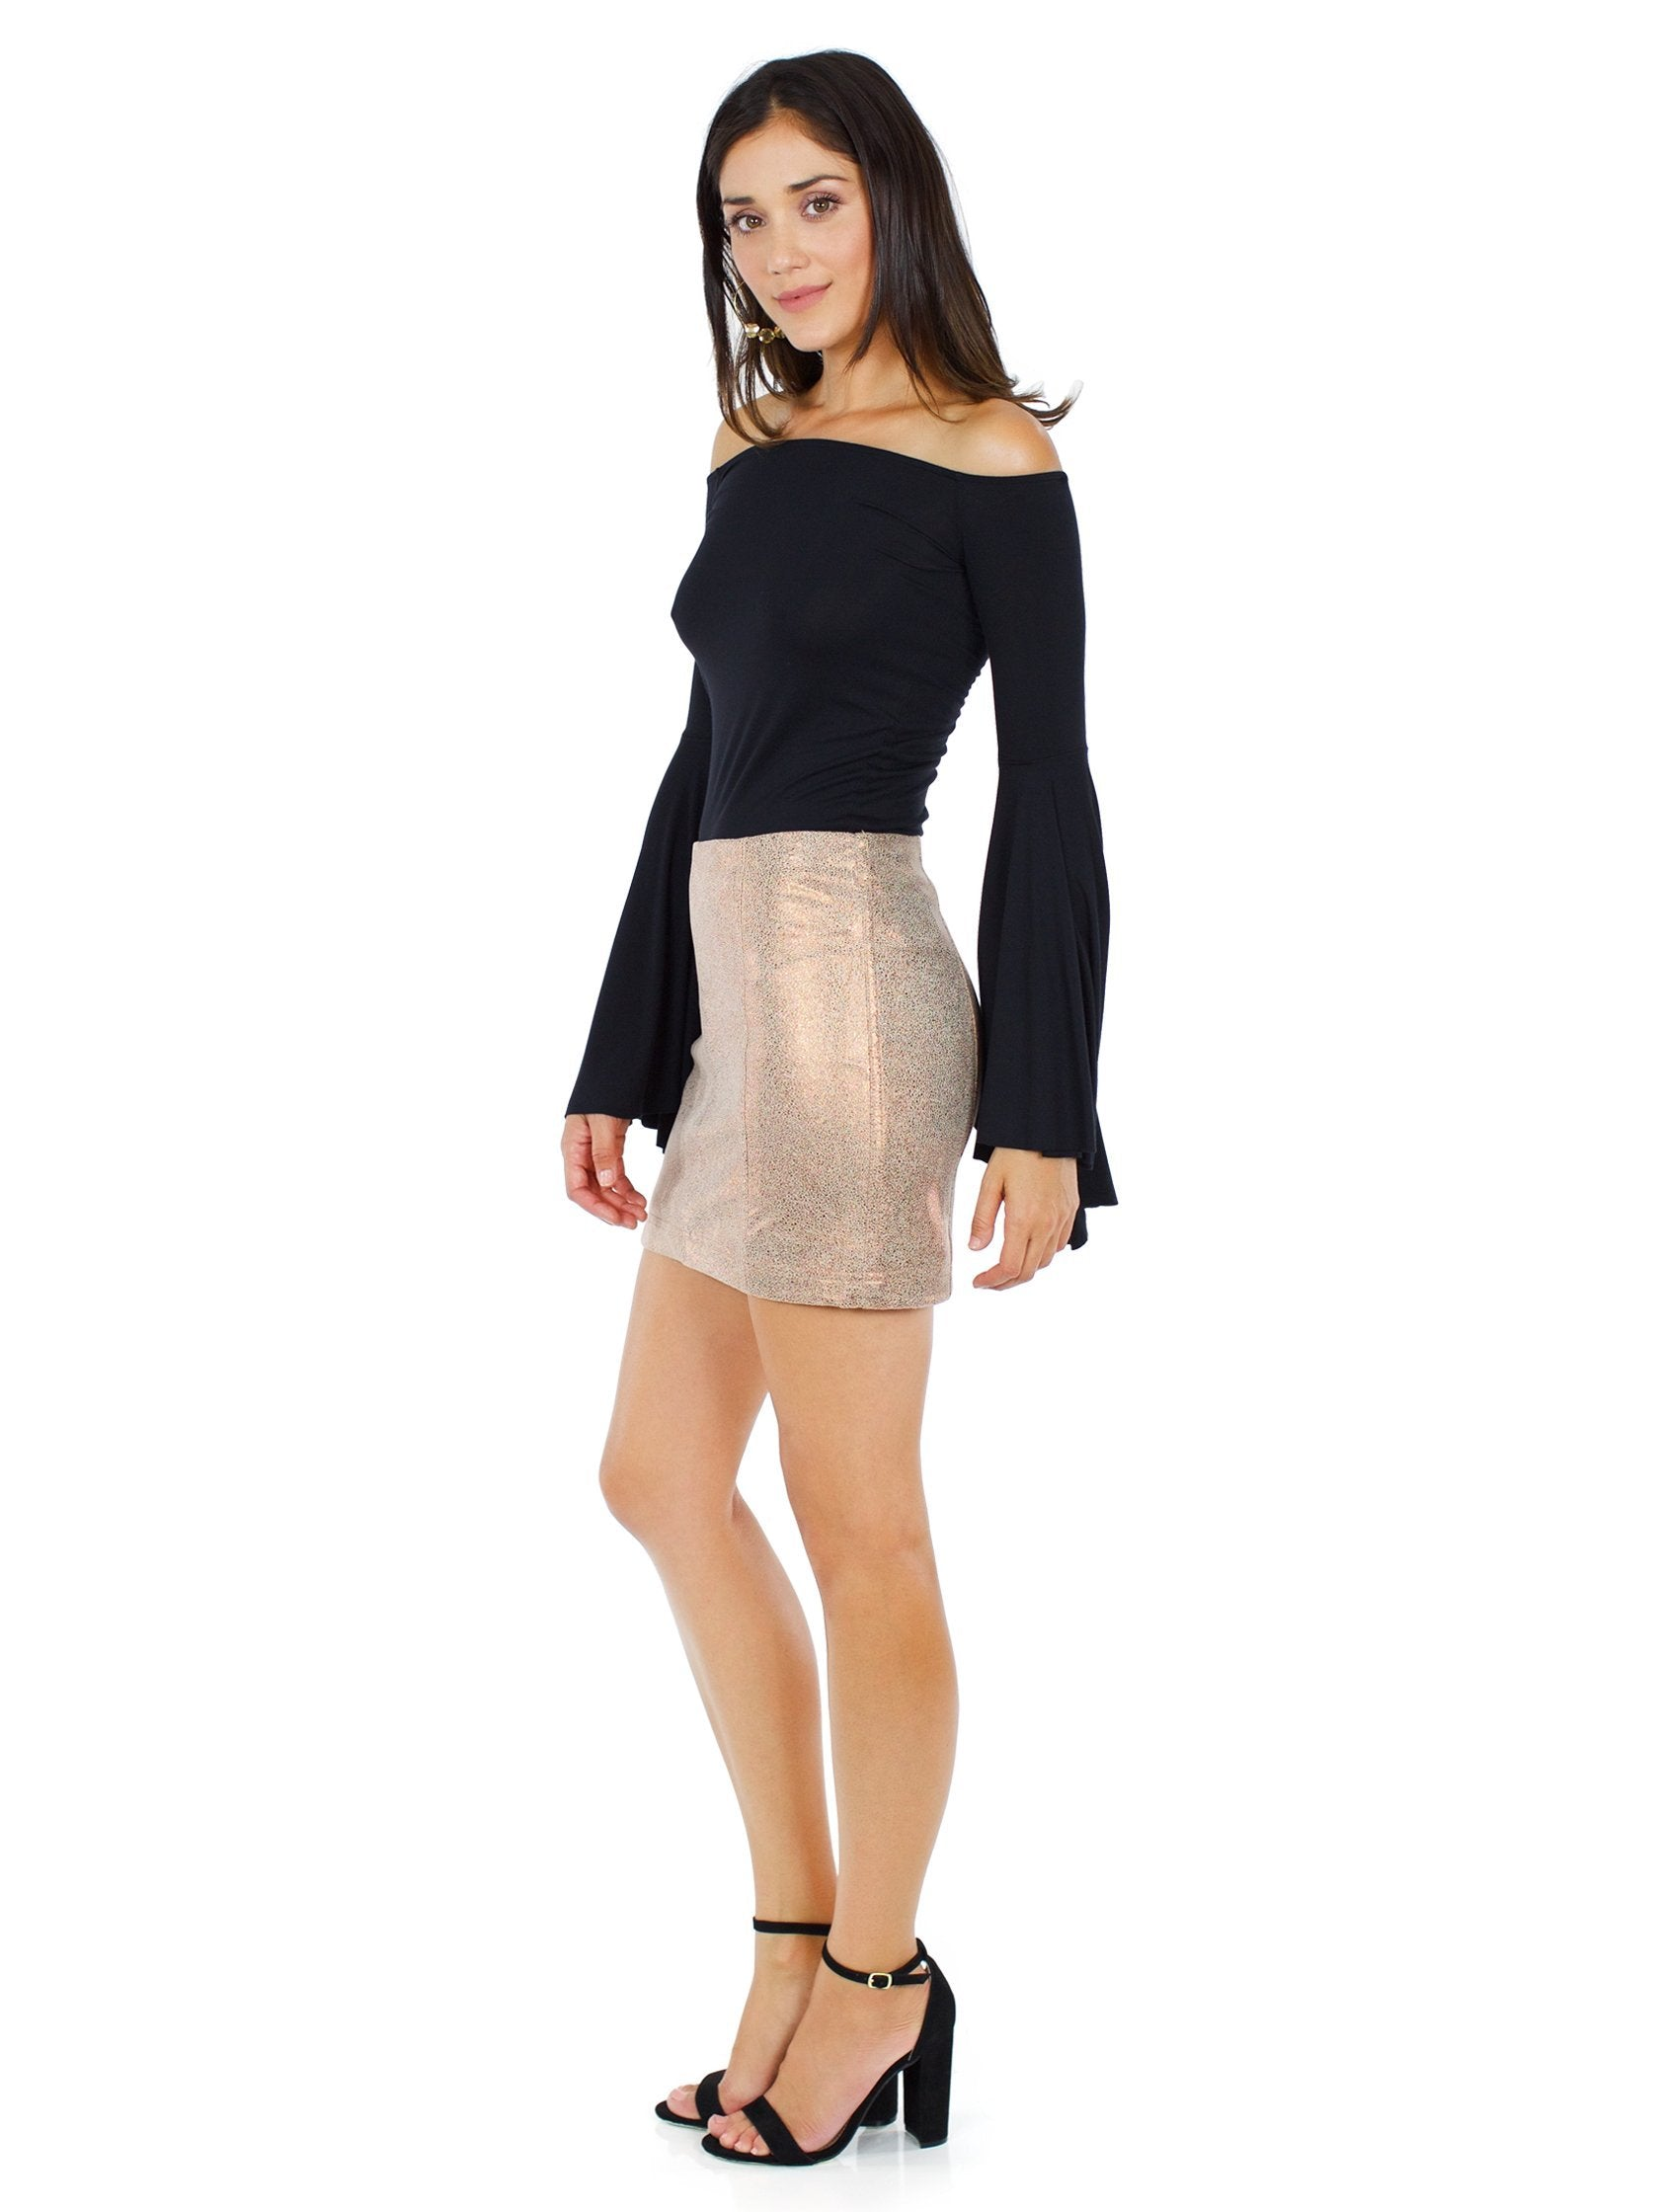 Woman wearing a skirt rental from Free People called Modern Femme Metallic Rose Gold Suede Mini Skirt